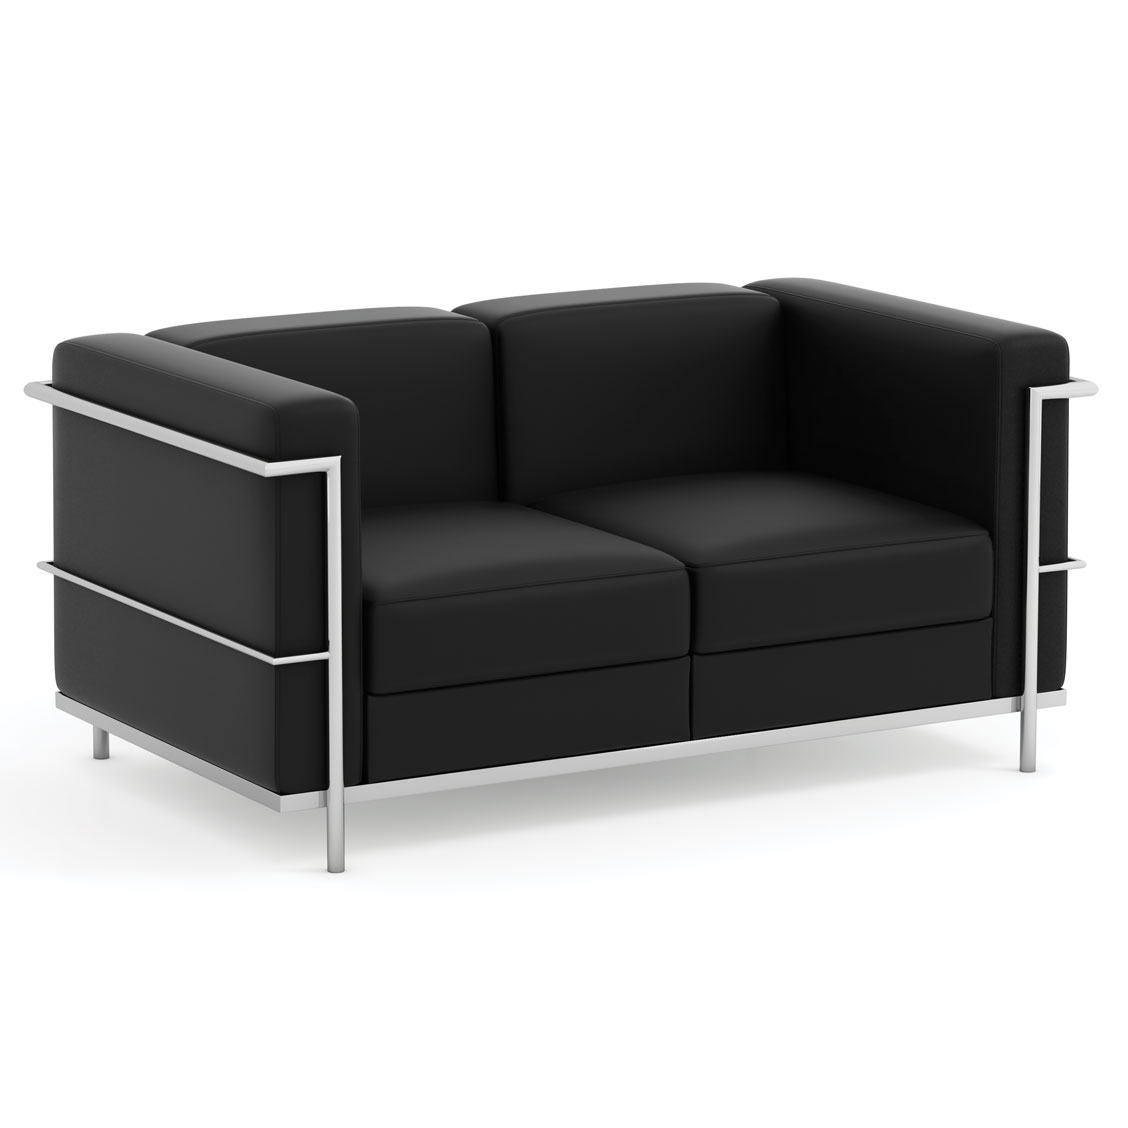 OfficeSource Madison Collection Loveseat with Chrome Exposed Frame